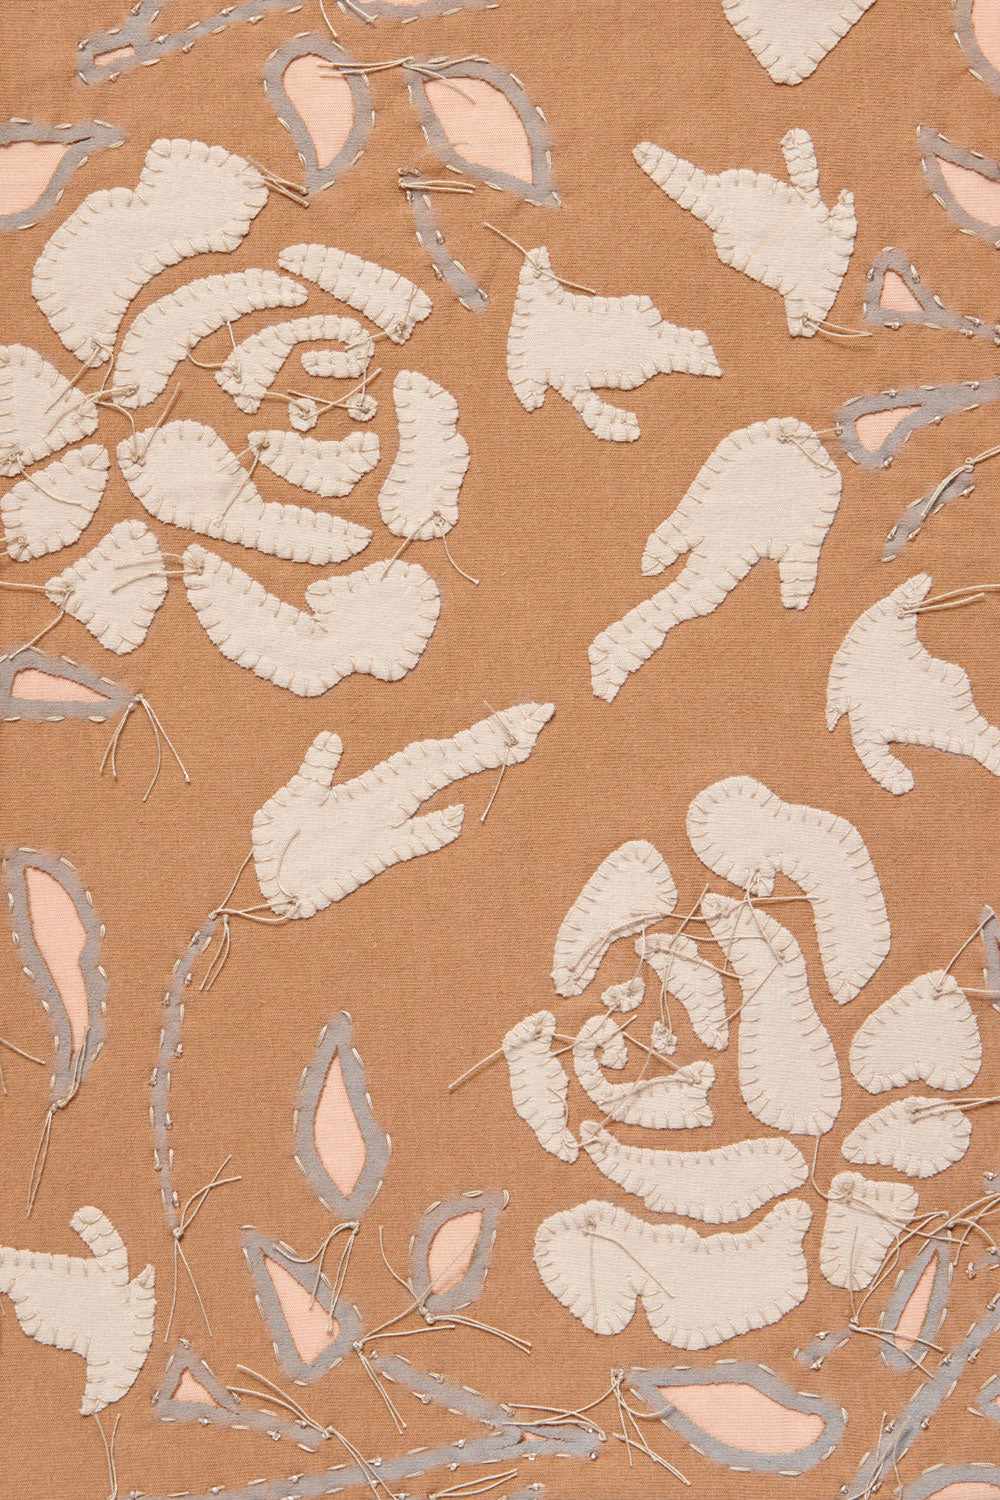 Alabama Chanin Rose Fabric Swatch in Applique from Upcycled Cotton T-shirts and 100% Organic Cotton Jersey in Camel/Wax and Beige